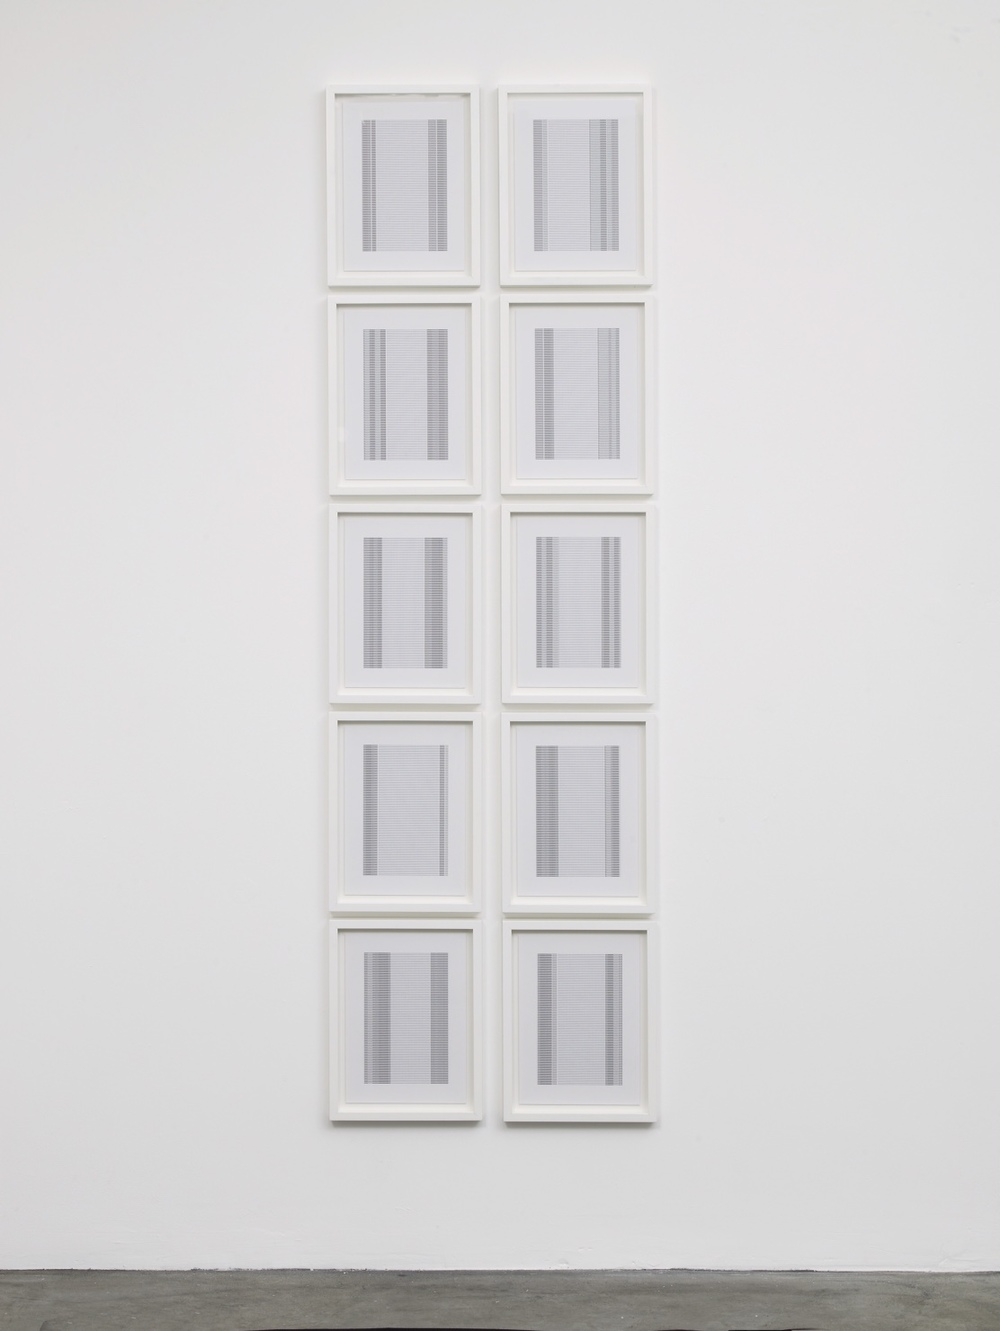 Pillars of Hercules - EU Embassies in Brussels, 2015, 29.7 x 21 cm each